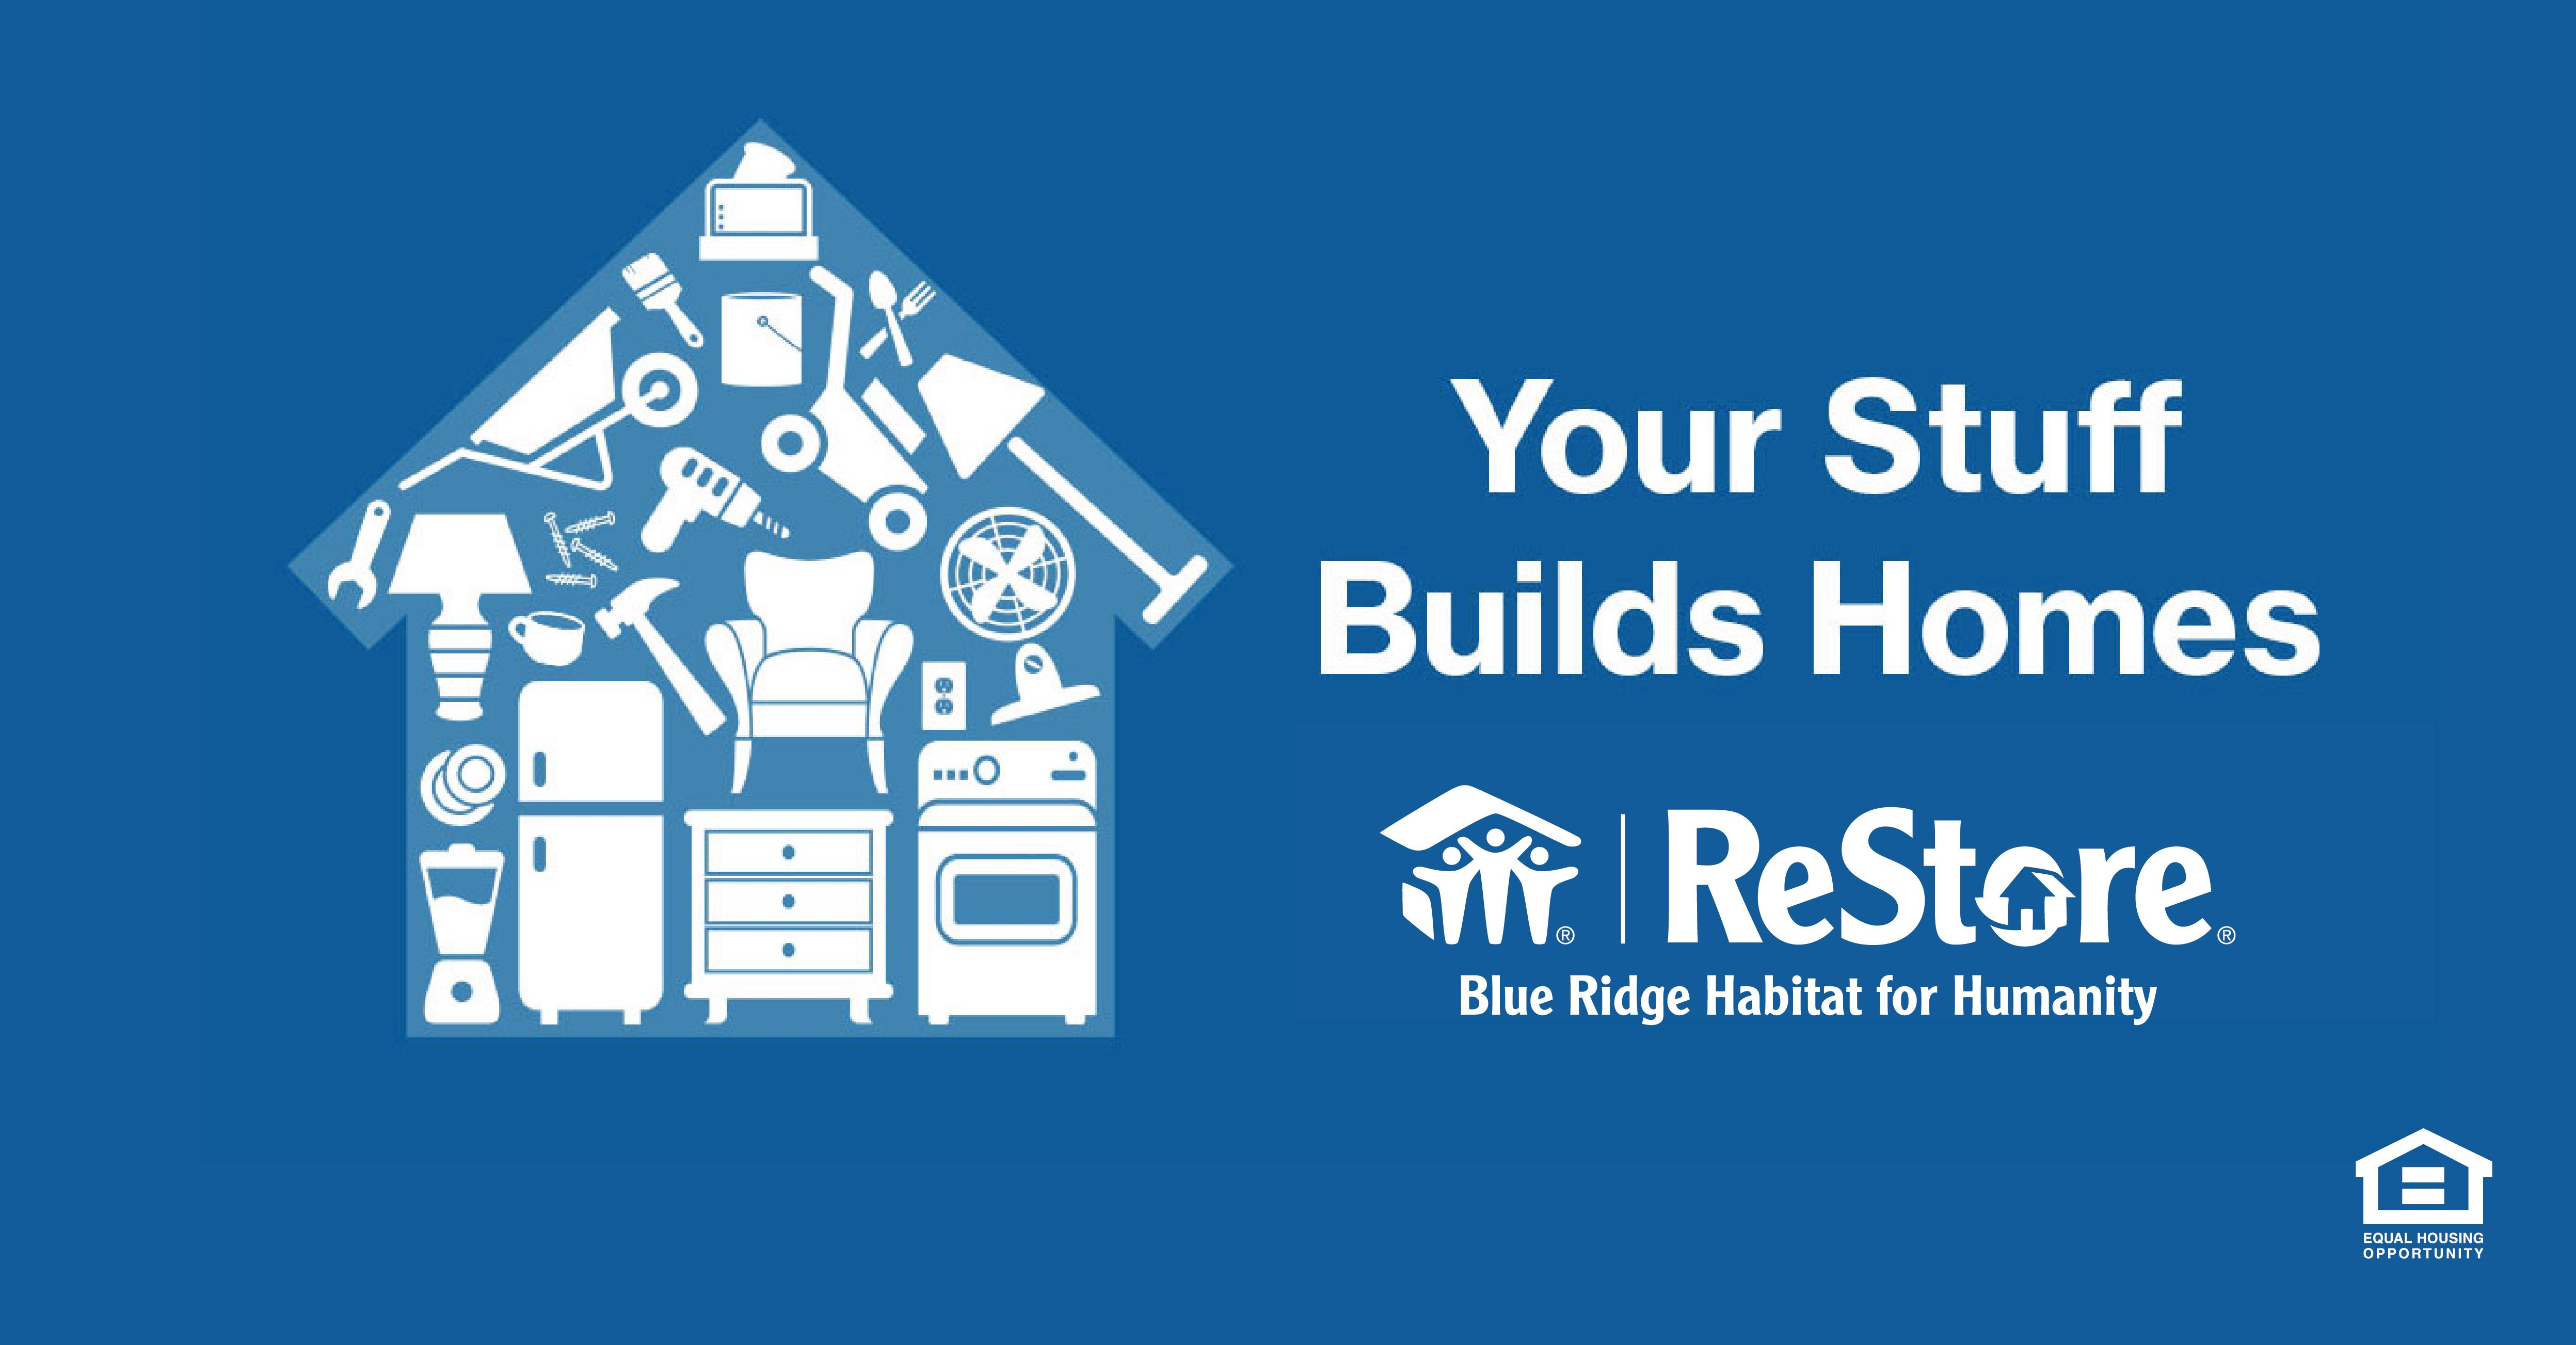 Your Stuff Builds Homes